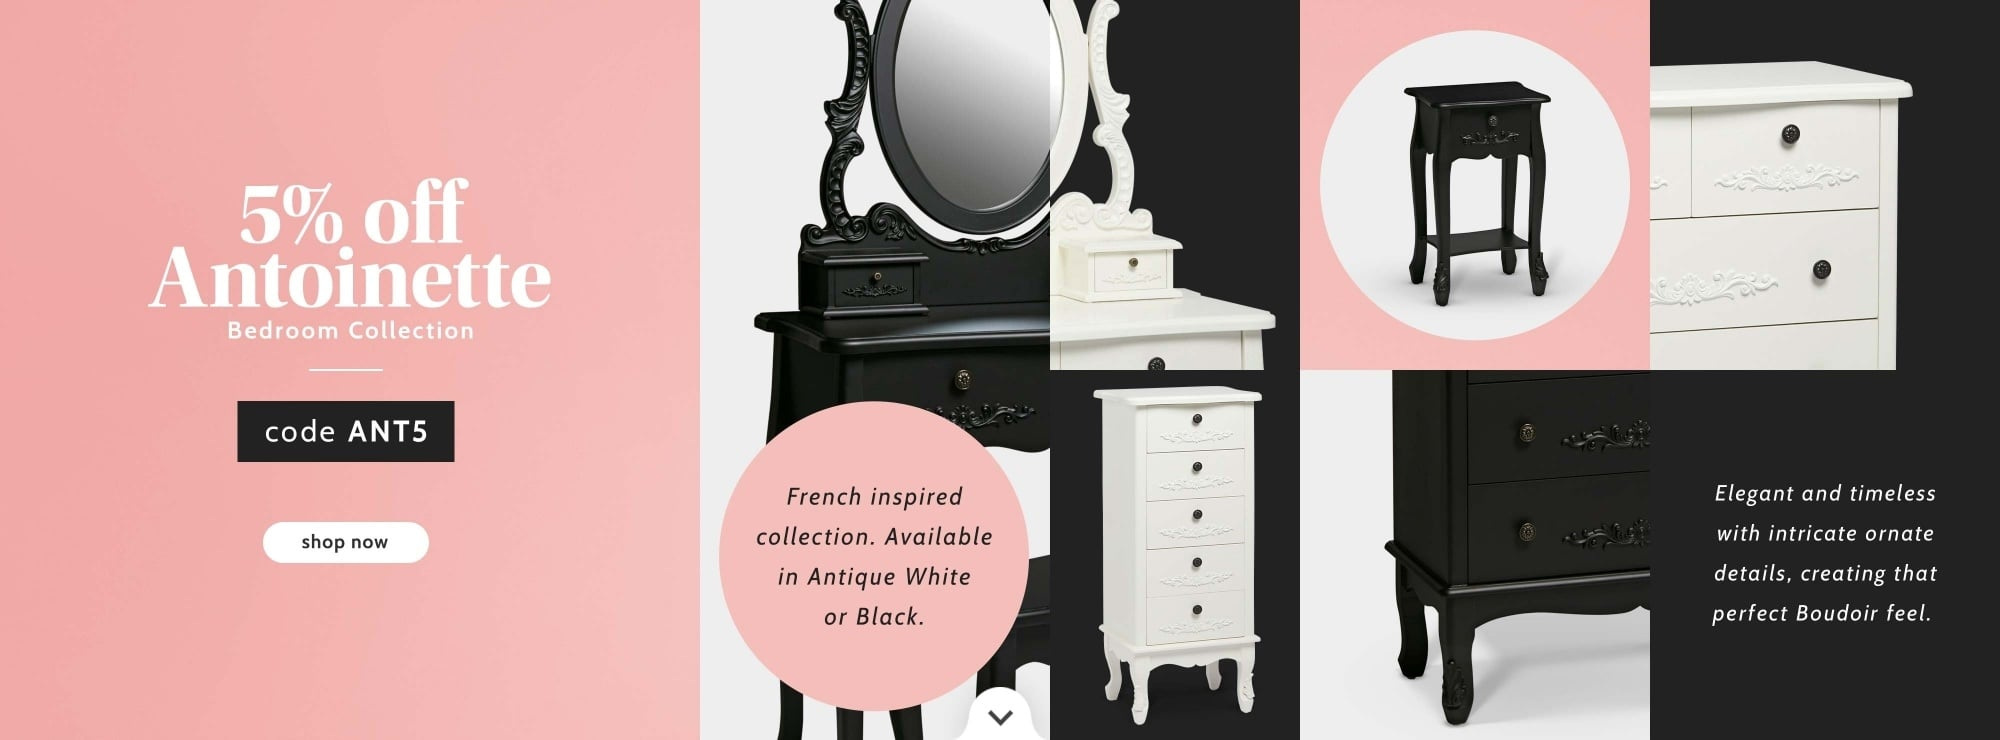 5% OFF Antoinette Bedroom collection